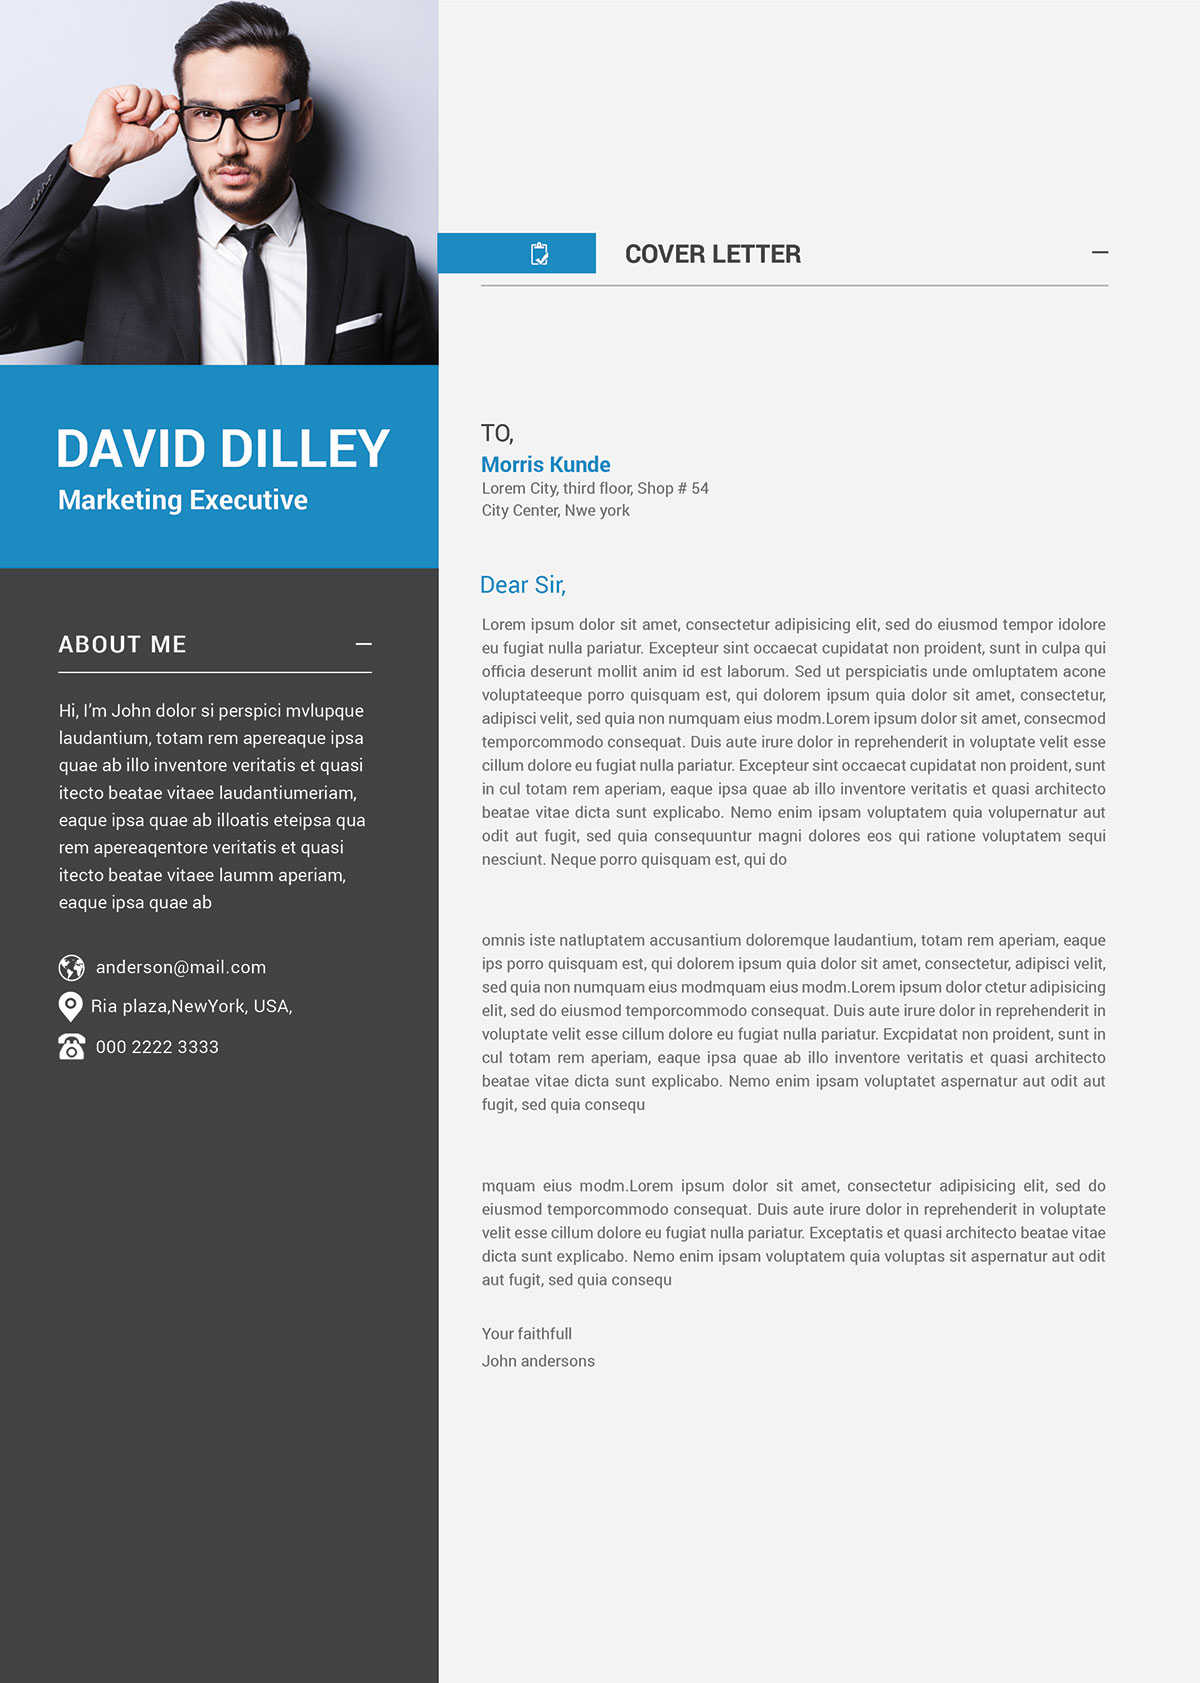 Free-Professional-CV-Template-& Cover-Letter-for-Marketing-Executive (6)